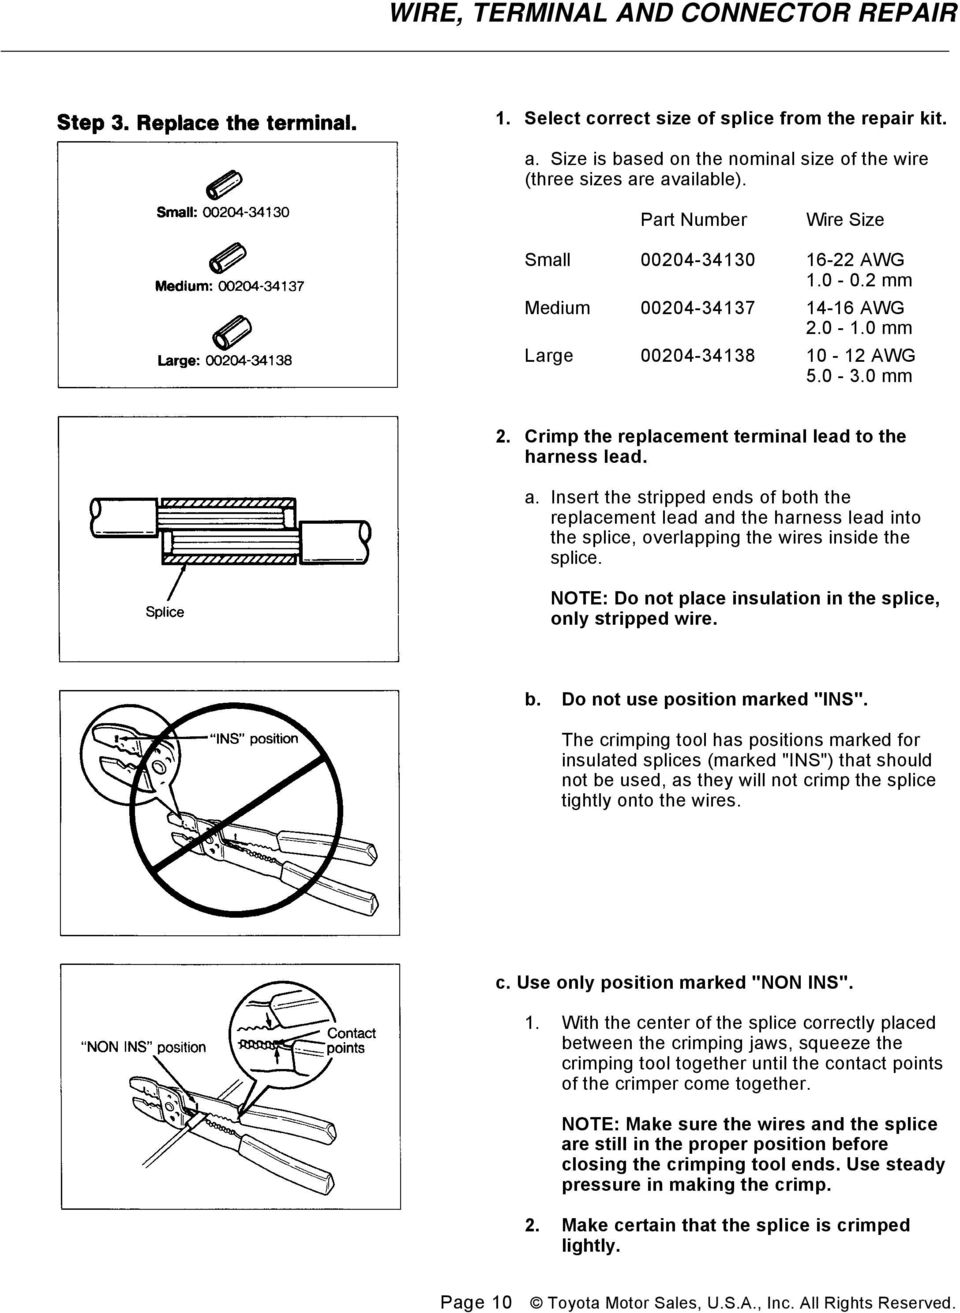 Wire Terminal And Connector Repair Conductors Pdf Part Two Amp Gauge Wiring Fixes Dodge Was Used For This Work Shop Insert The Stripped Ends Of Both Replacement Lead Harness Into Splice